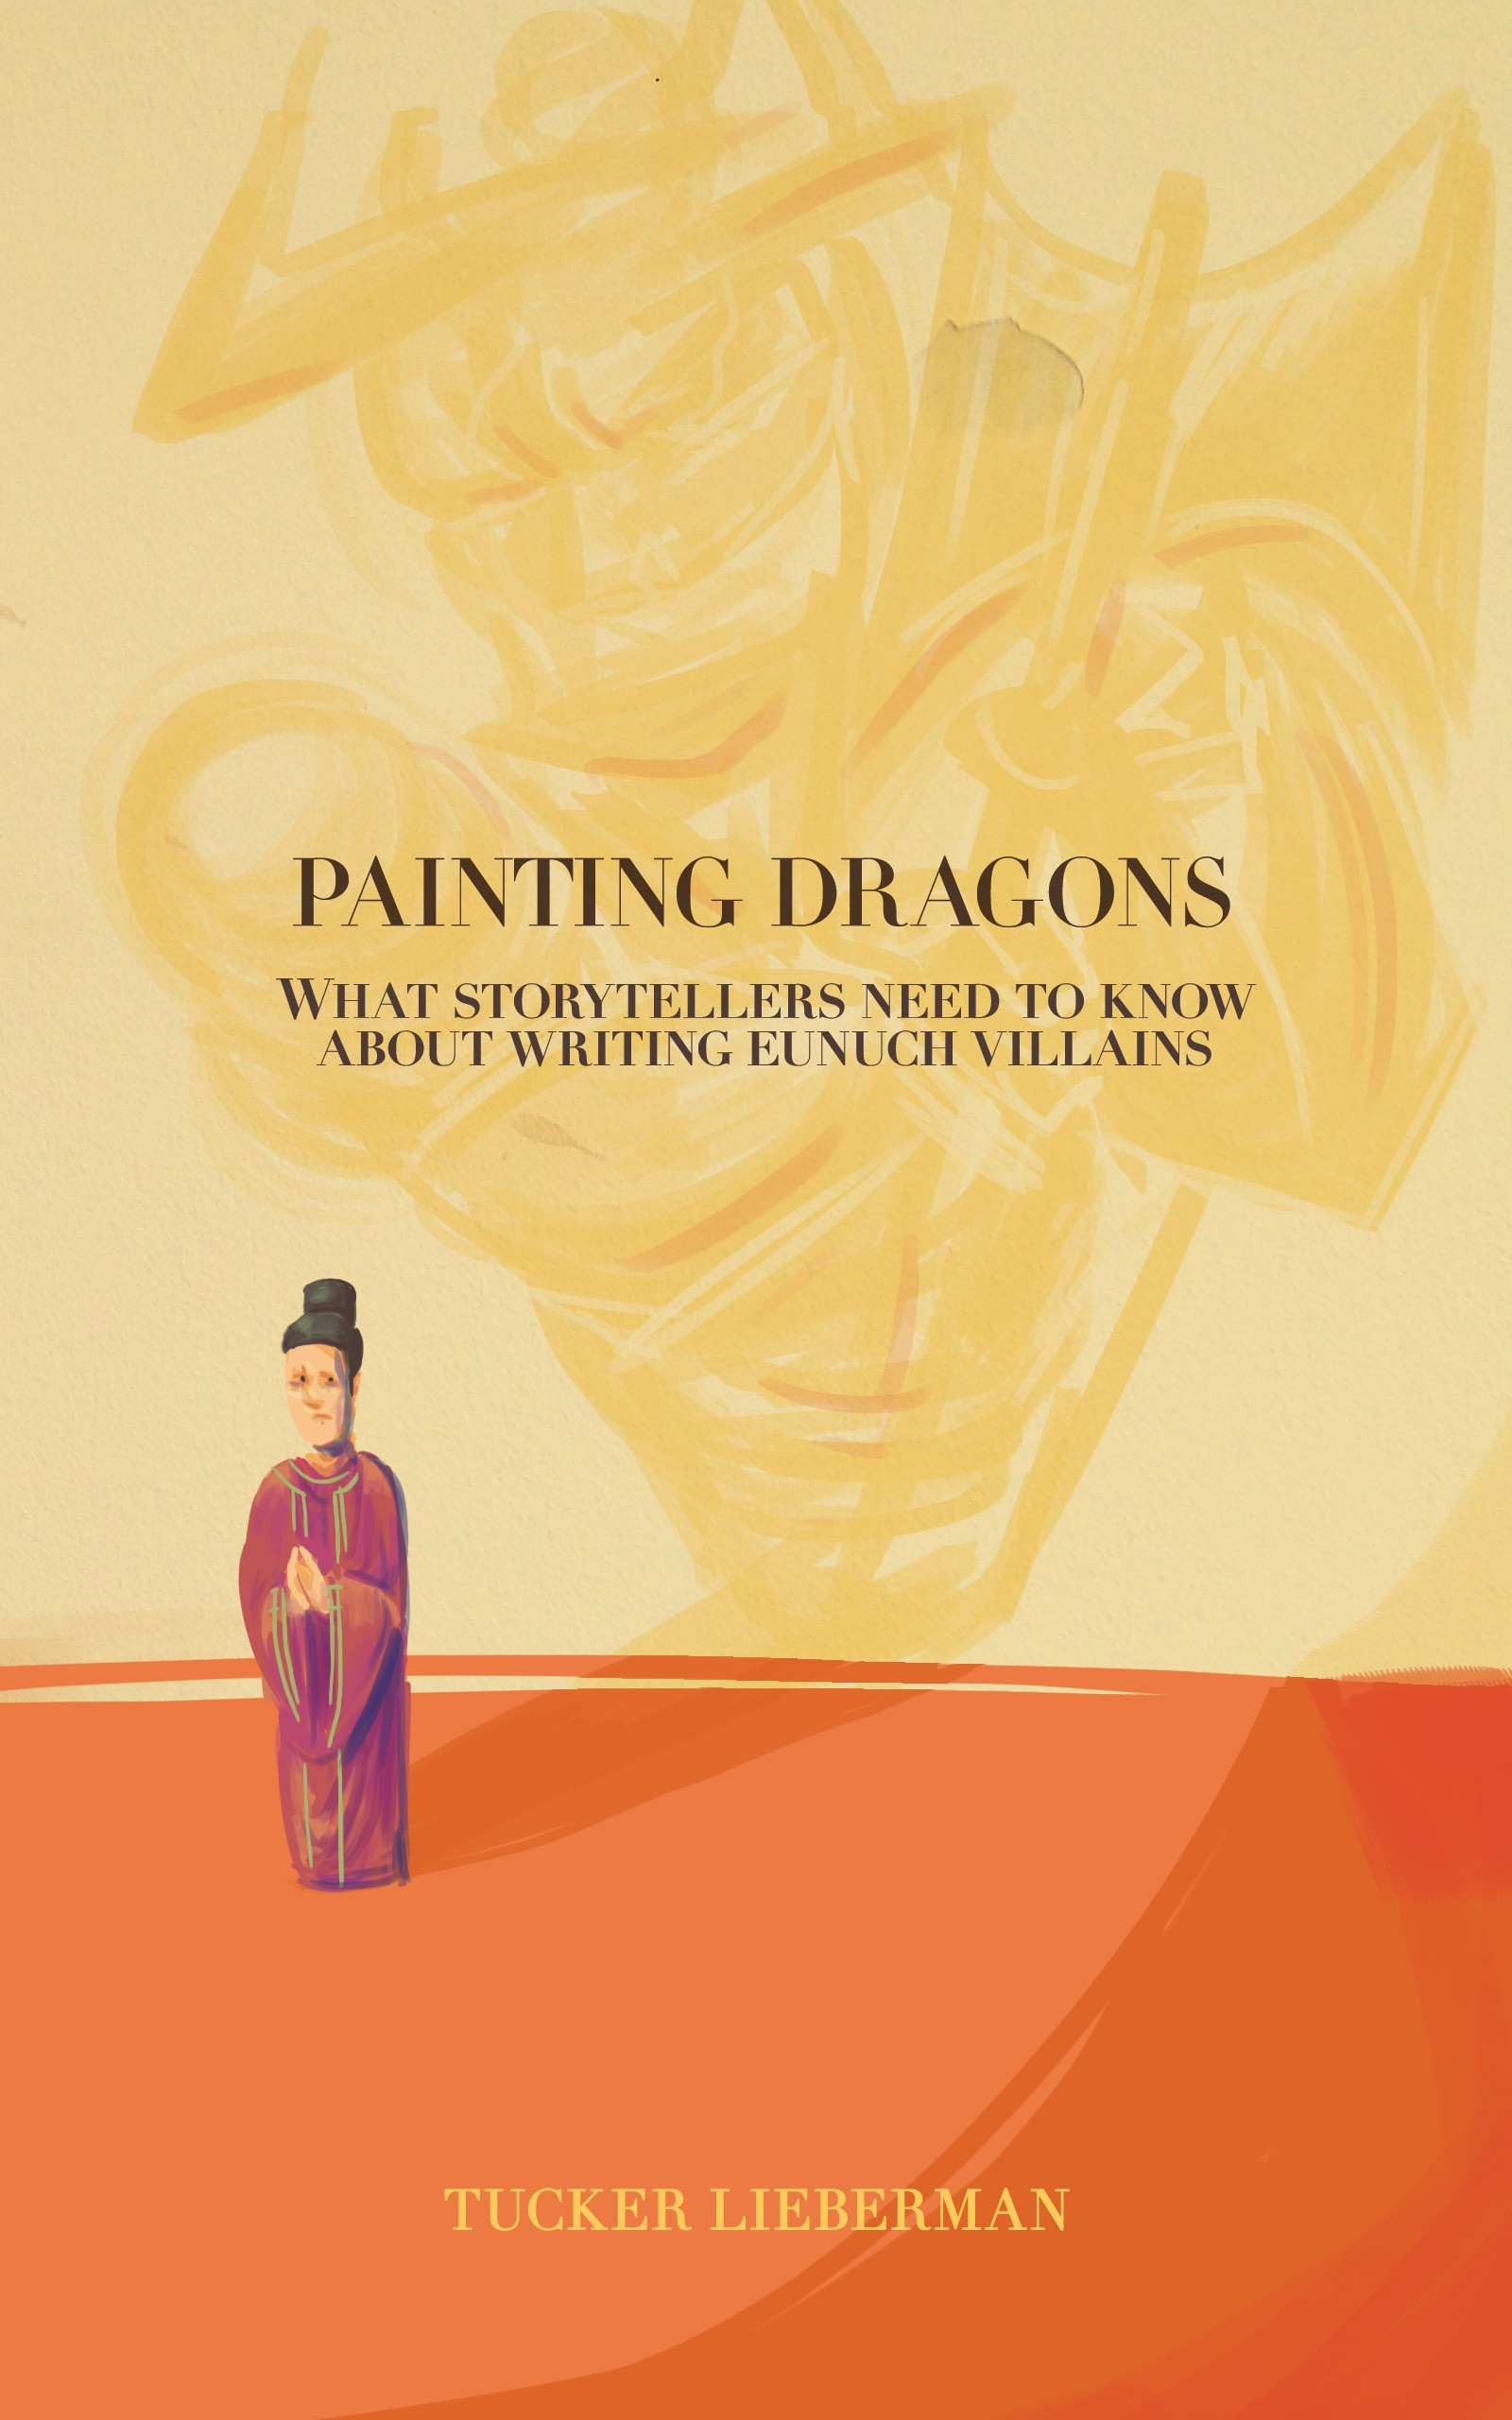 Painting Dragons: What Storytellers Need to Know About Writing Eunuch Villains